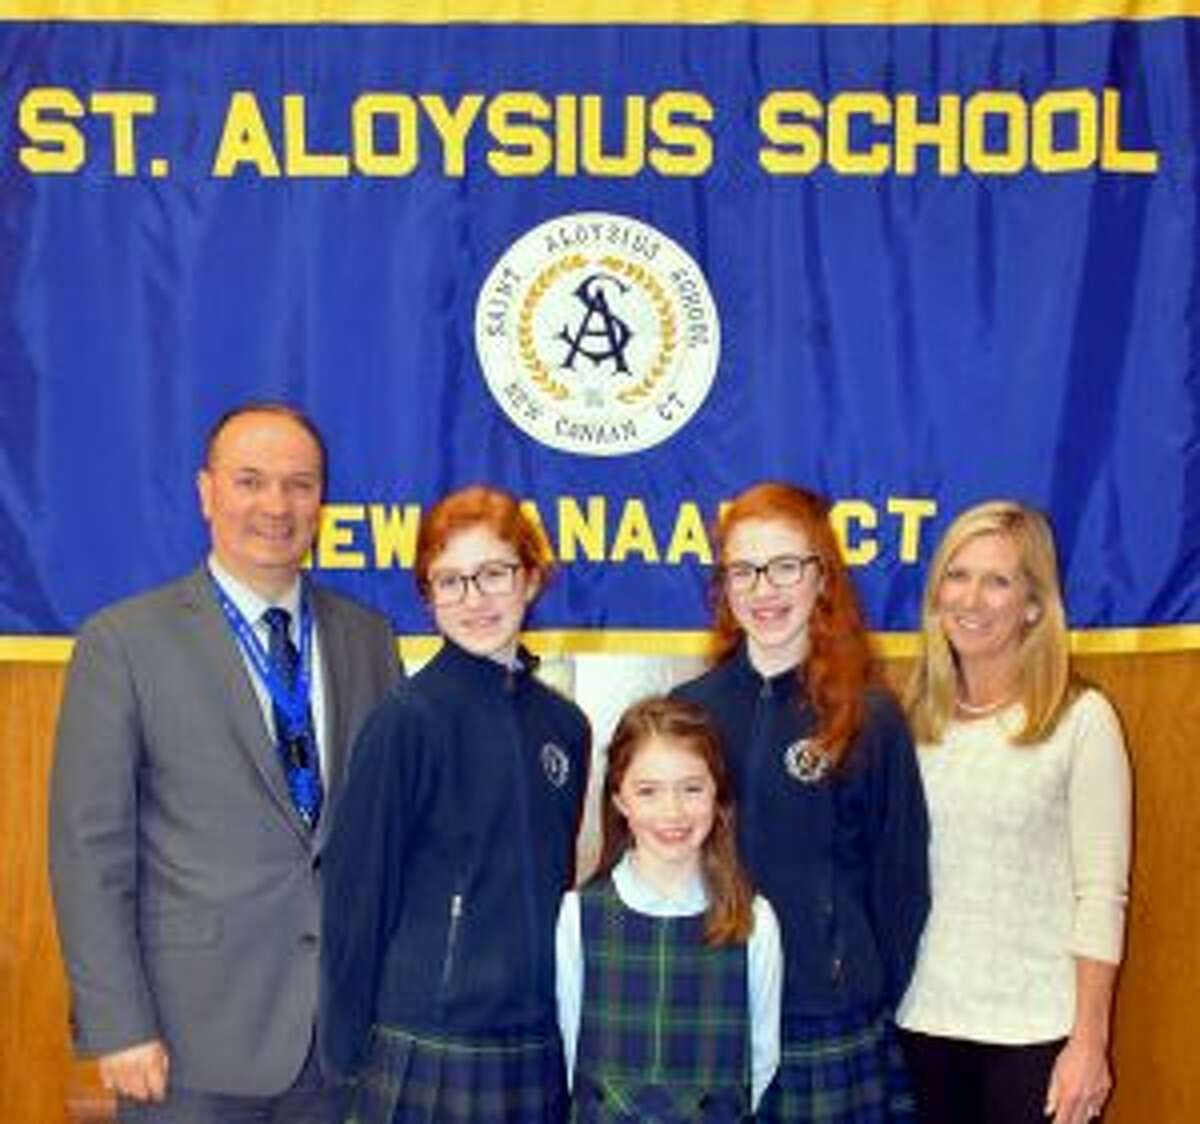 New Canaan: St. Aloysius's 'Read to Feed' in Lent shined light on the Heifer Project. Principal Bardhyl Gjoka and Read To Feed Coordinator Deborah Moran, reward winners in the student contest Anna Gayer, left; Noelle Gayer, right; and Lilly Gayer, front. - Contributed photo